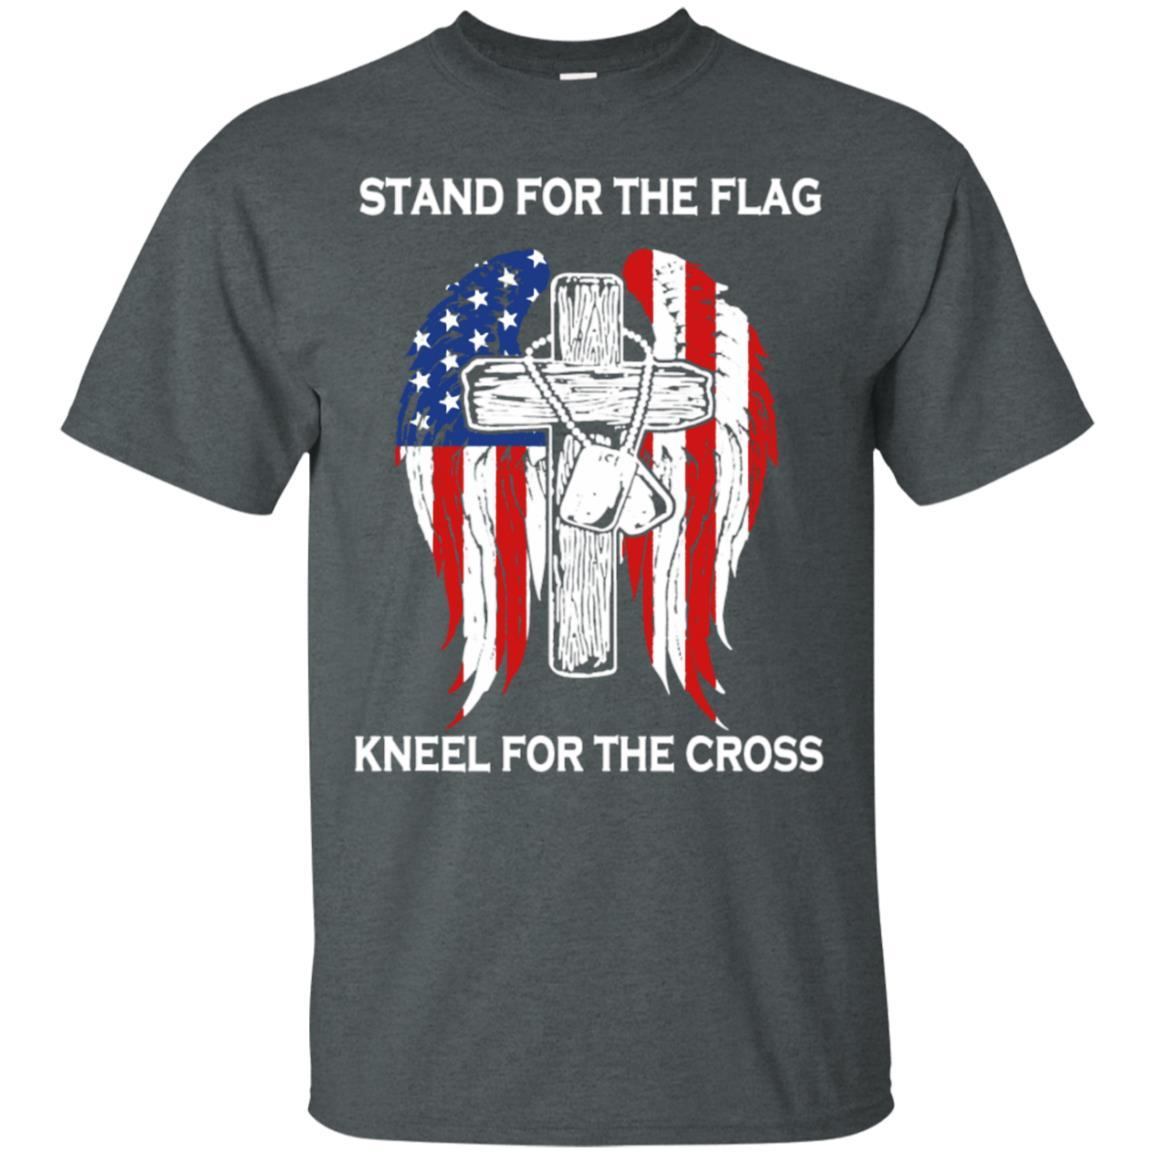 Stand For The Flag Kneel For The Cross T-Shirt Style / Color / Size